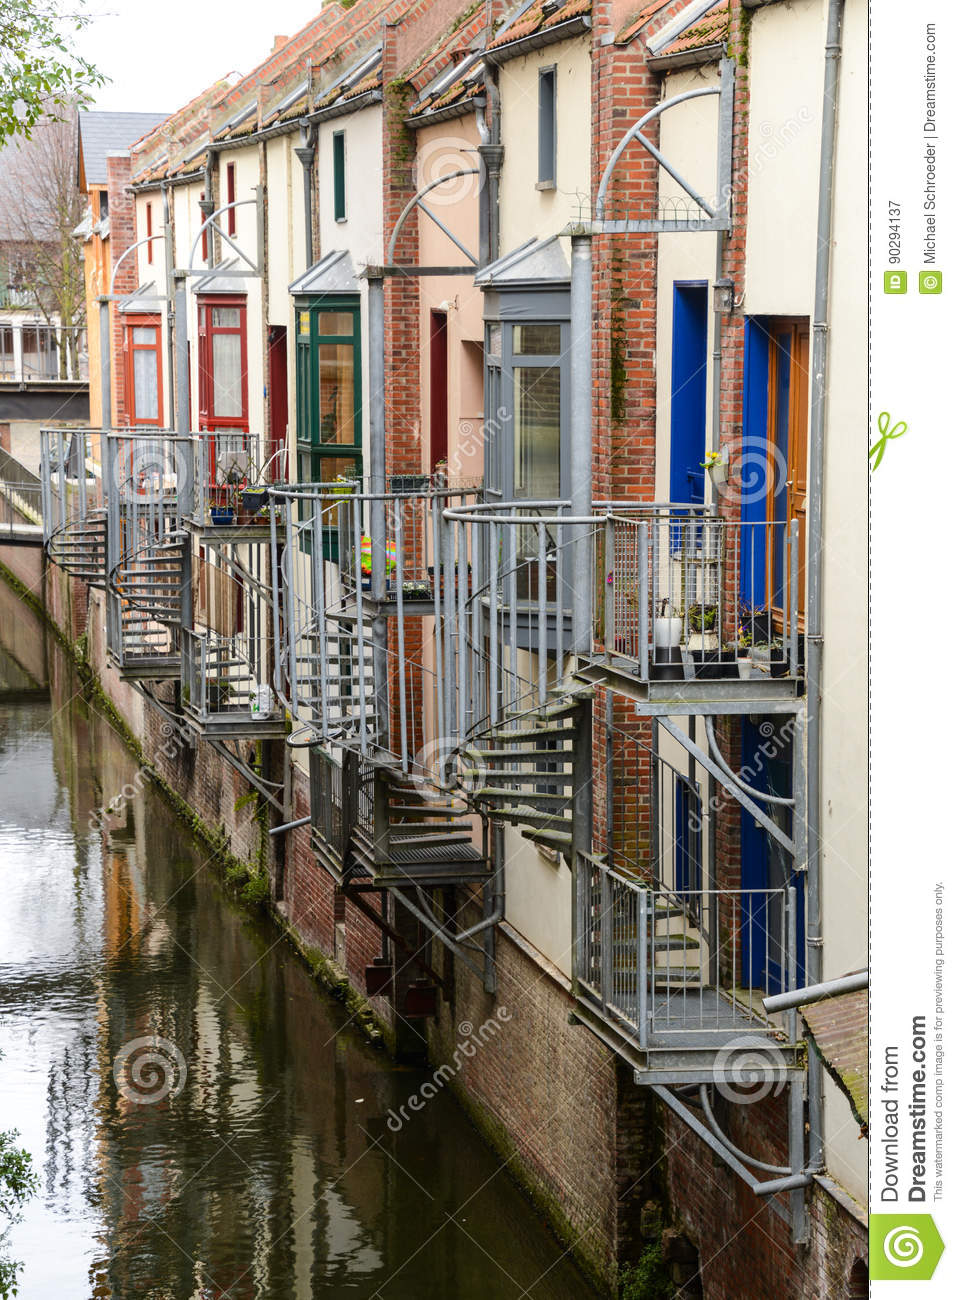 Historical houses with balconies and spiral staircases